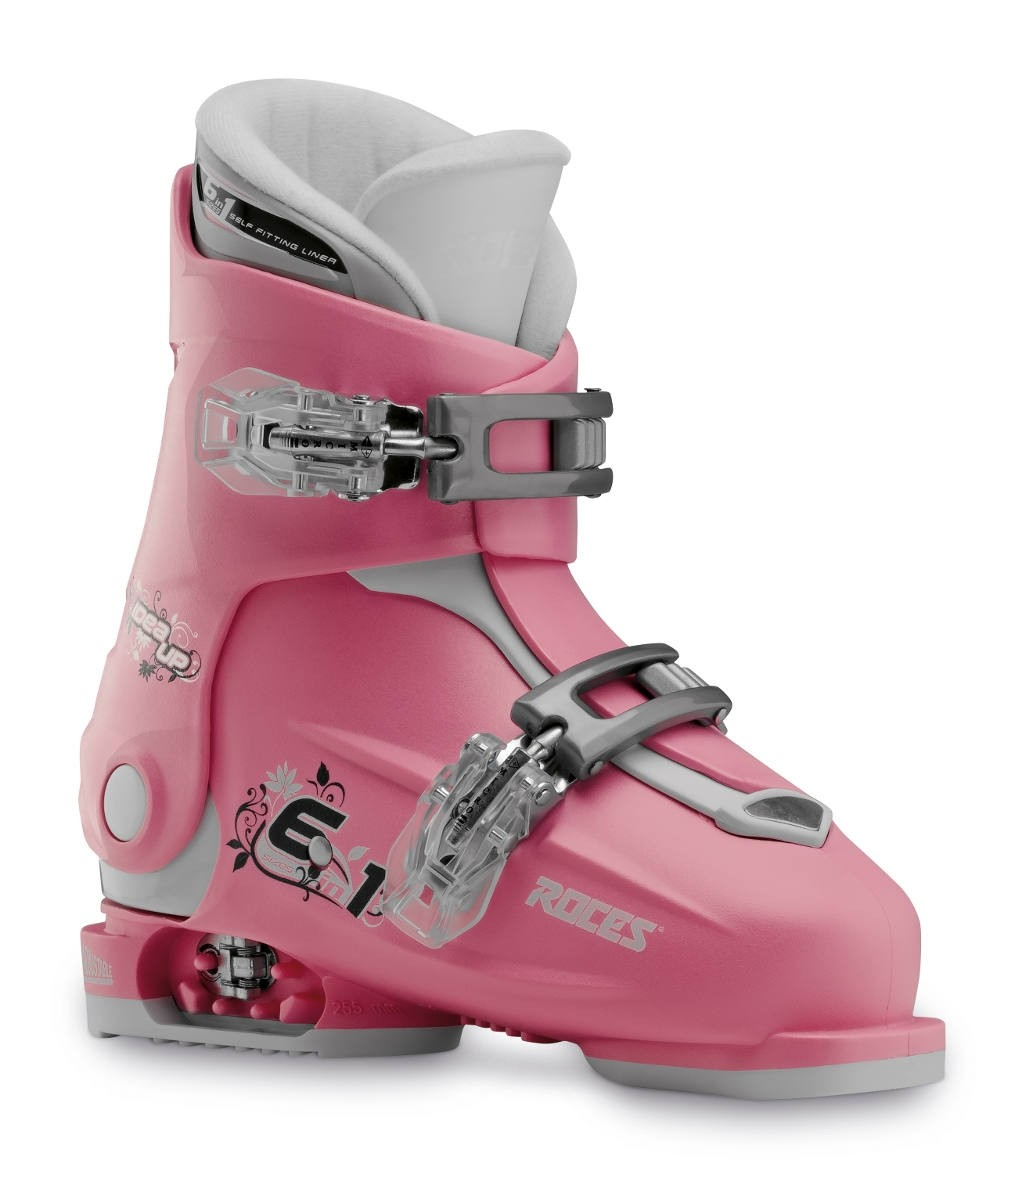 SKI PANCERICE ROCES PODESIVE IDEA UP DEEP PINK-WHITE 30-35